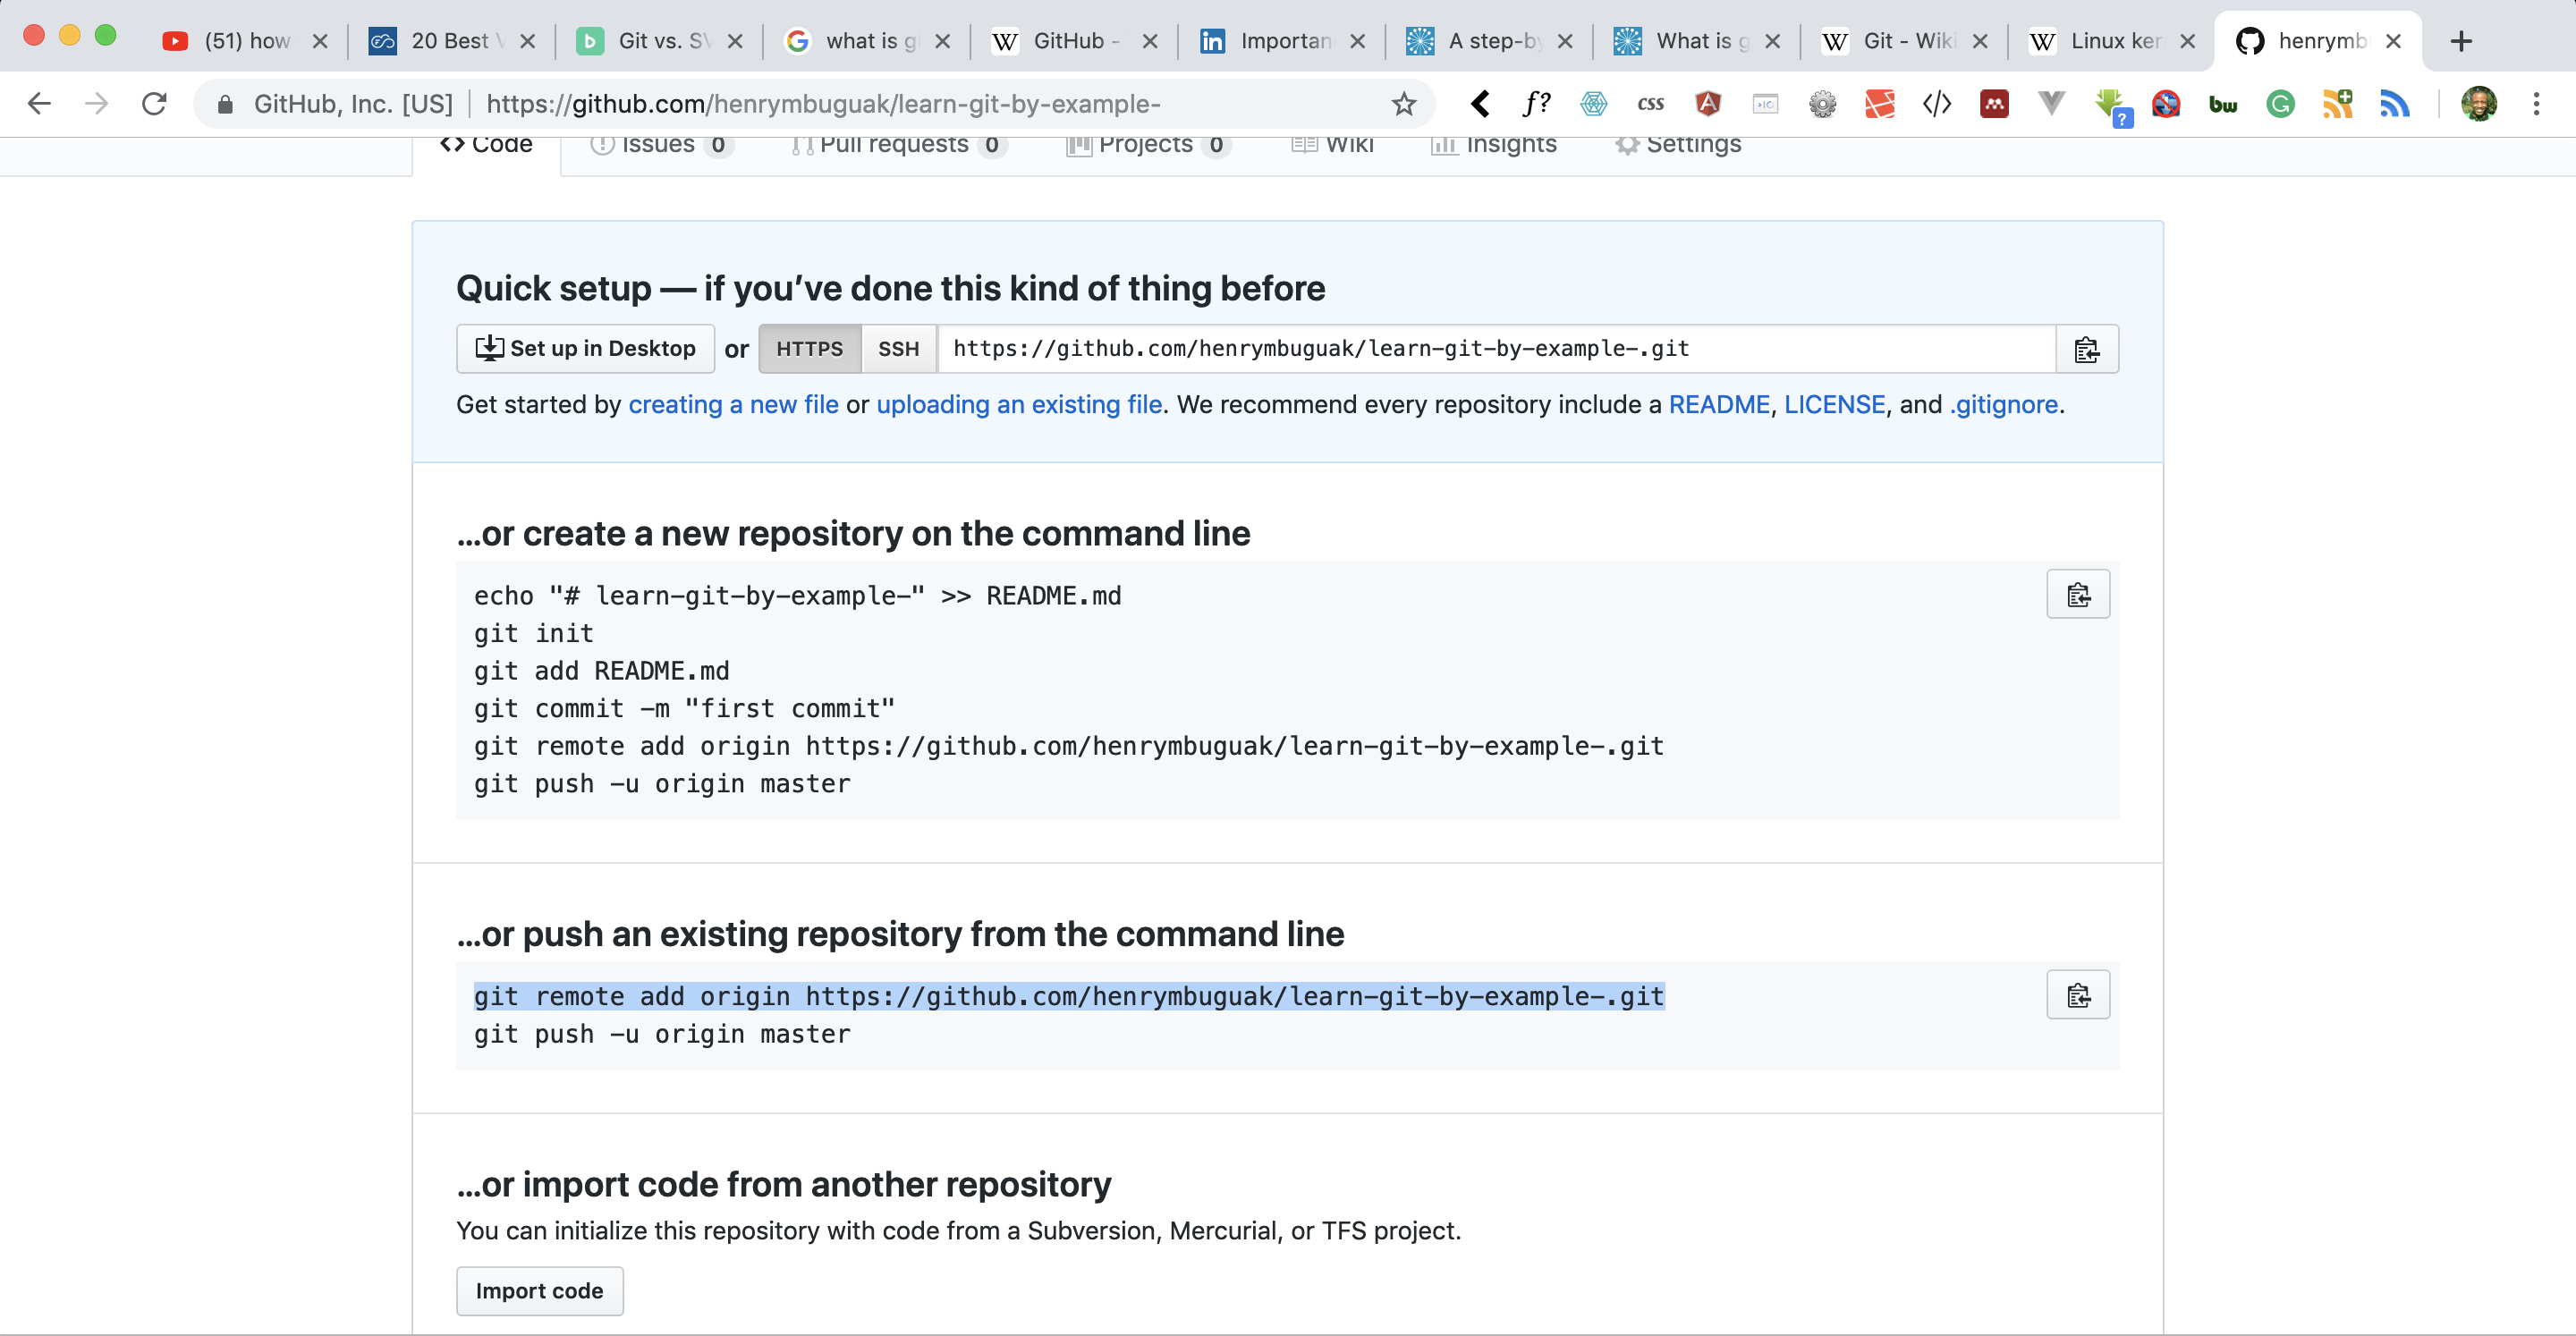 A Step by Step guide on how to use Git and Github